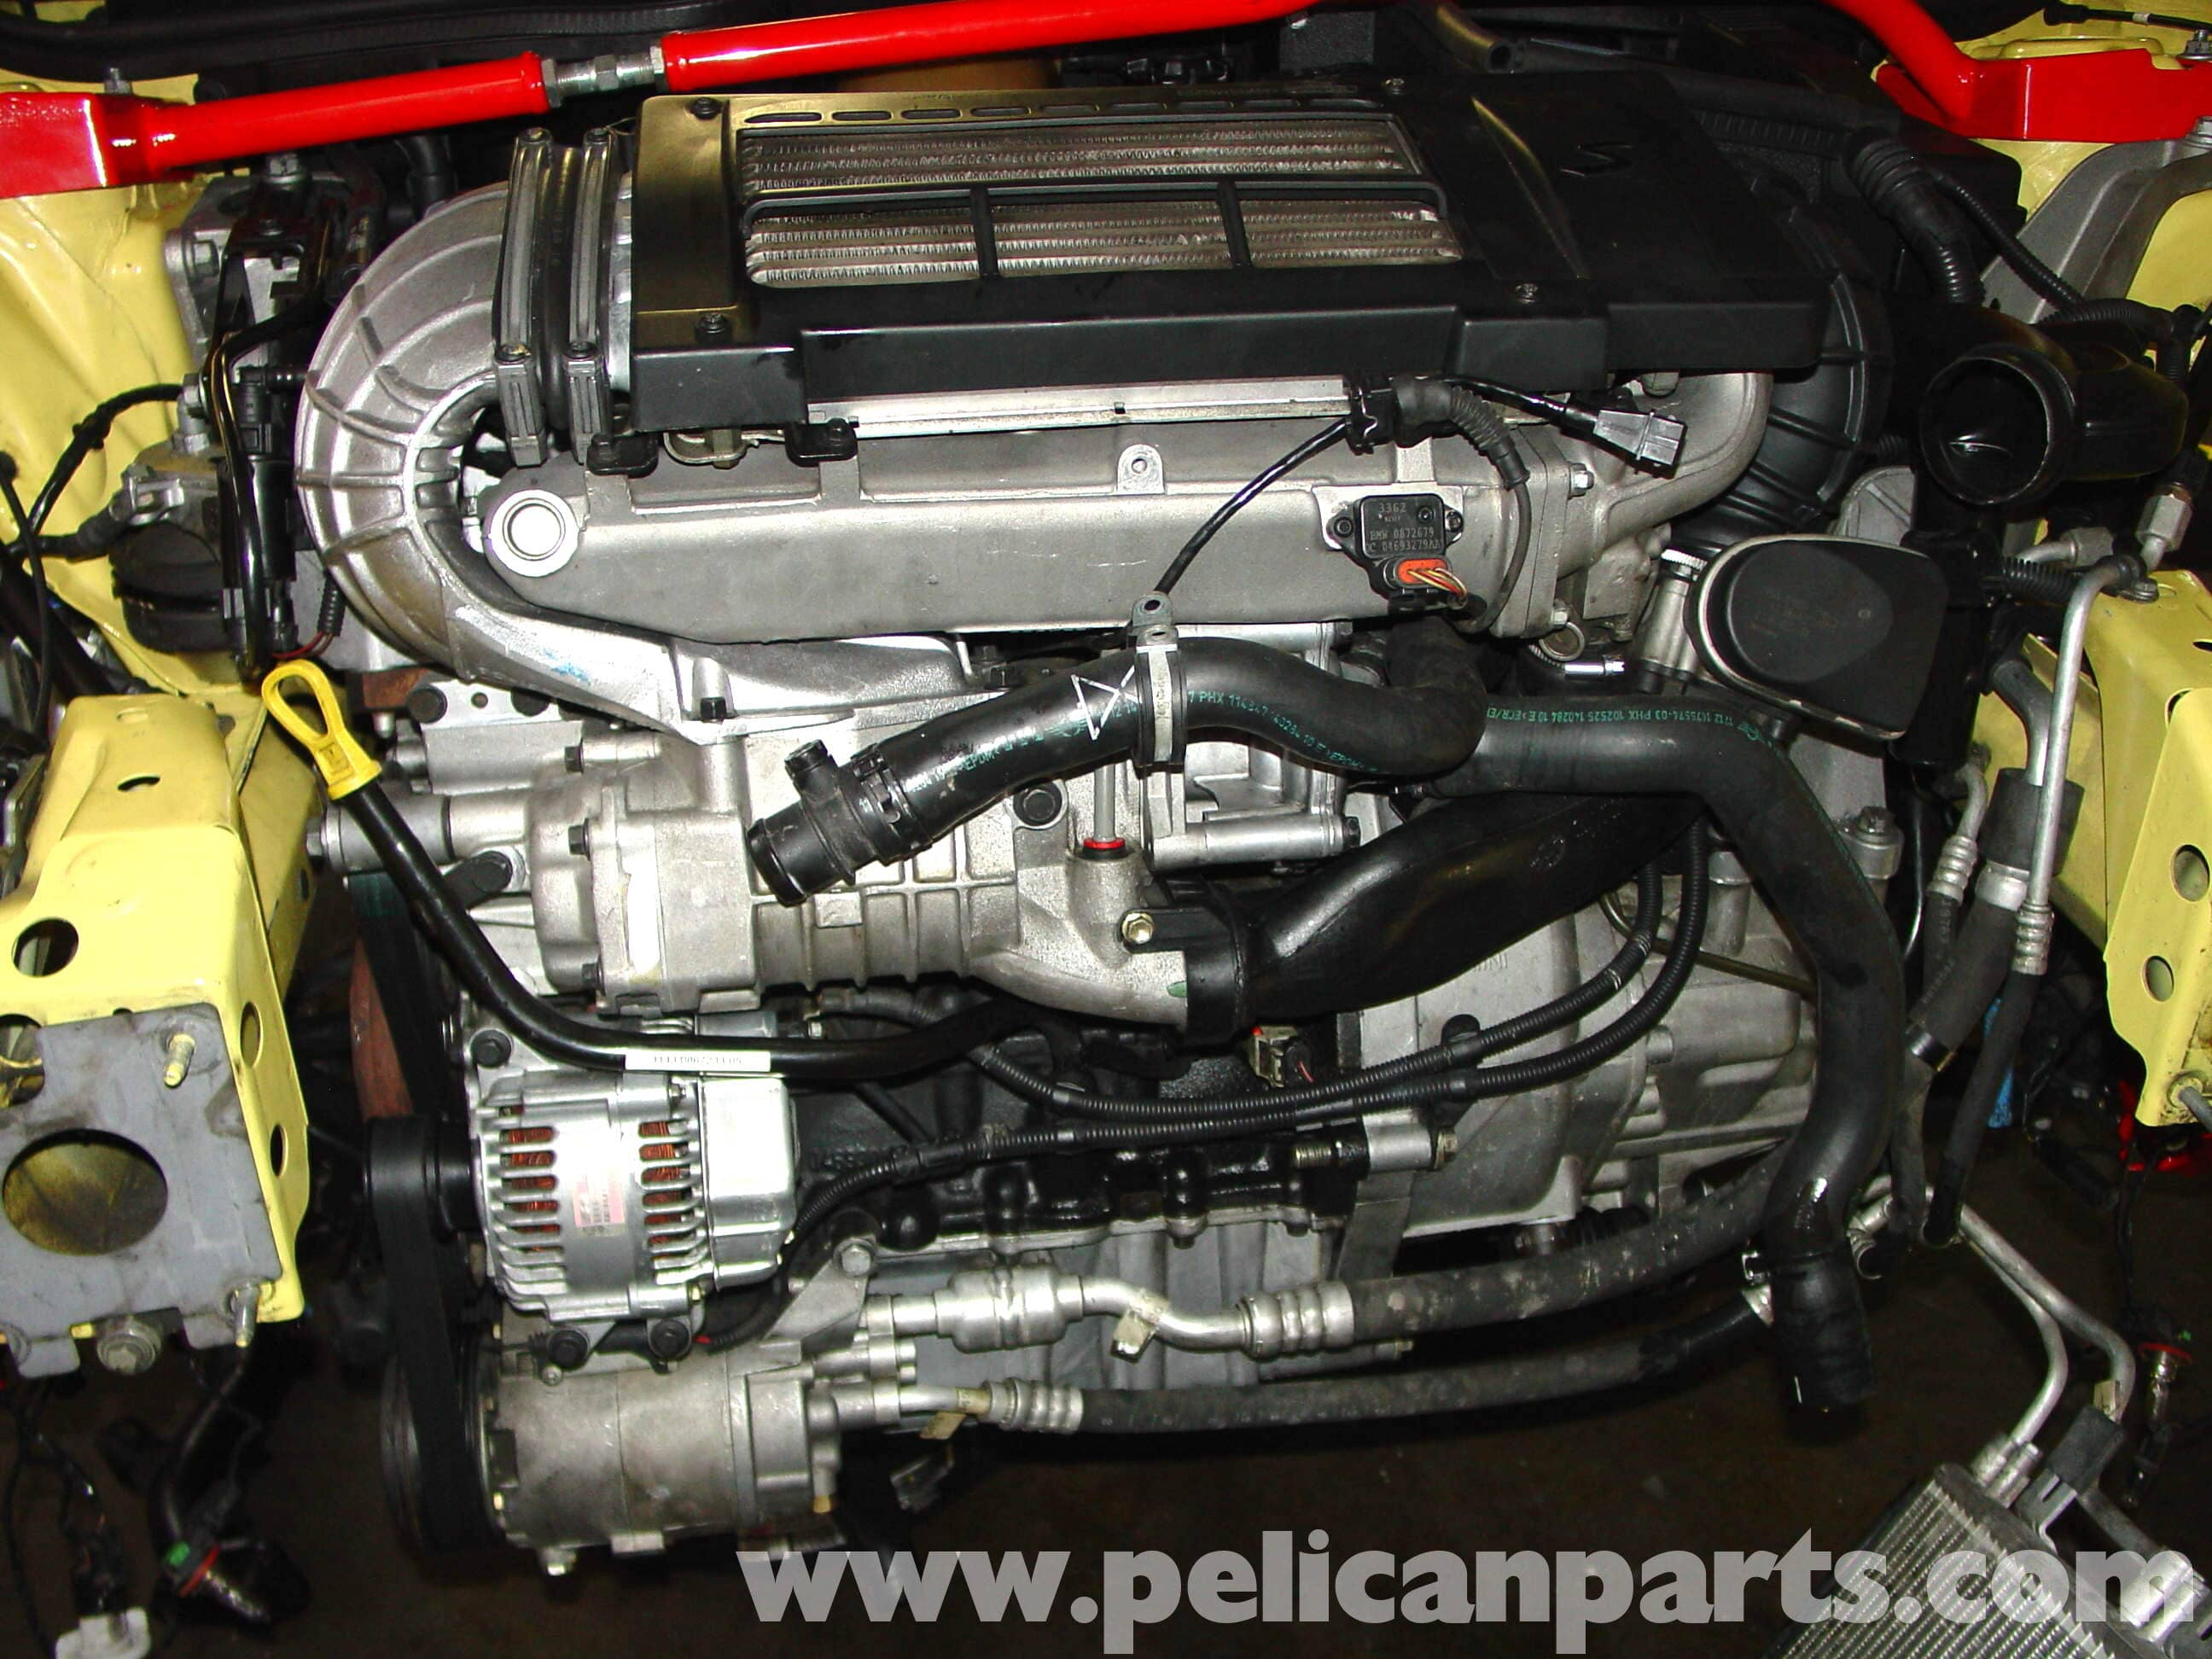 Pic11 mini cooper radiator, thermostat and hose replacement (r50 r52 r53  at nearapp.co